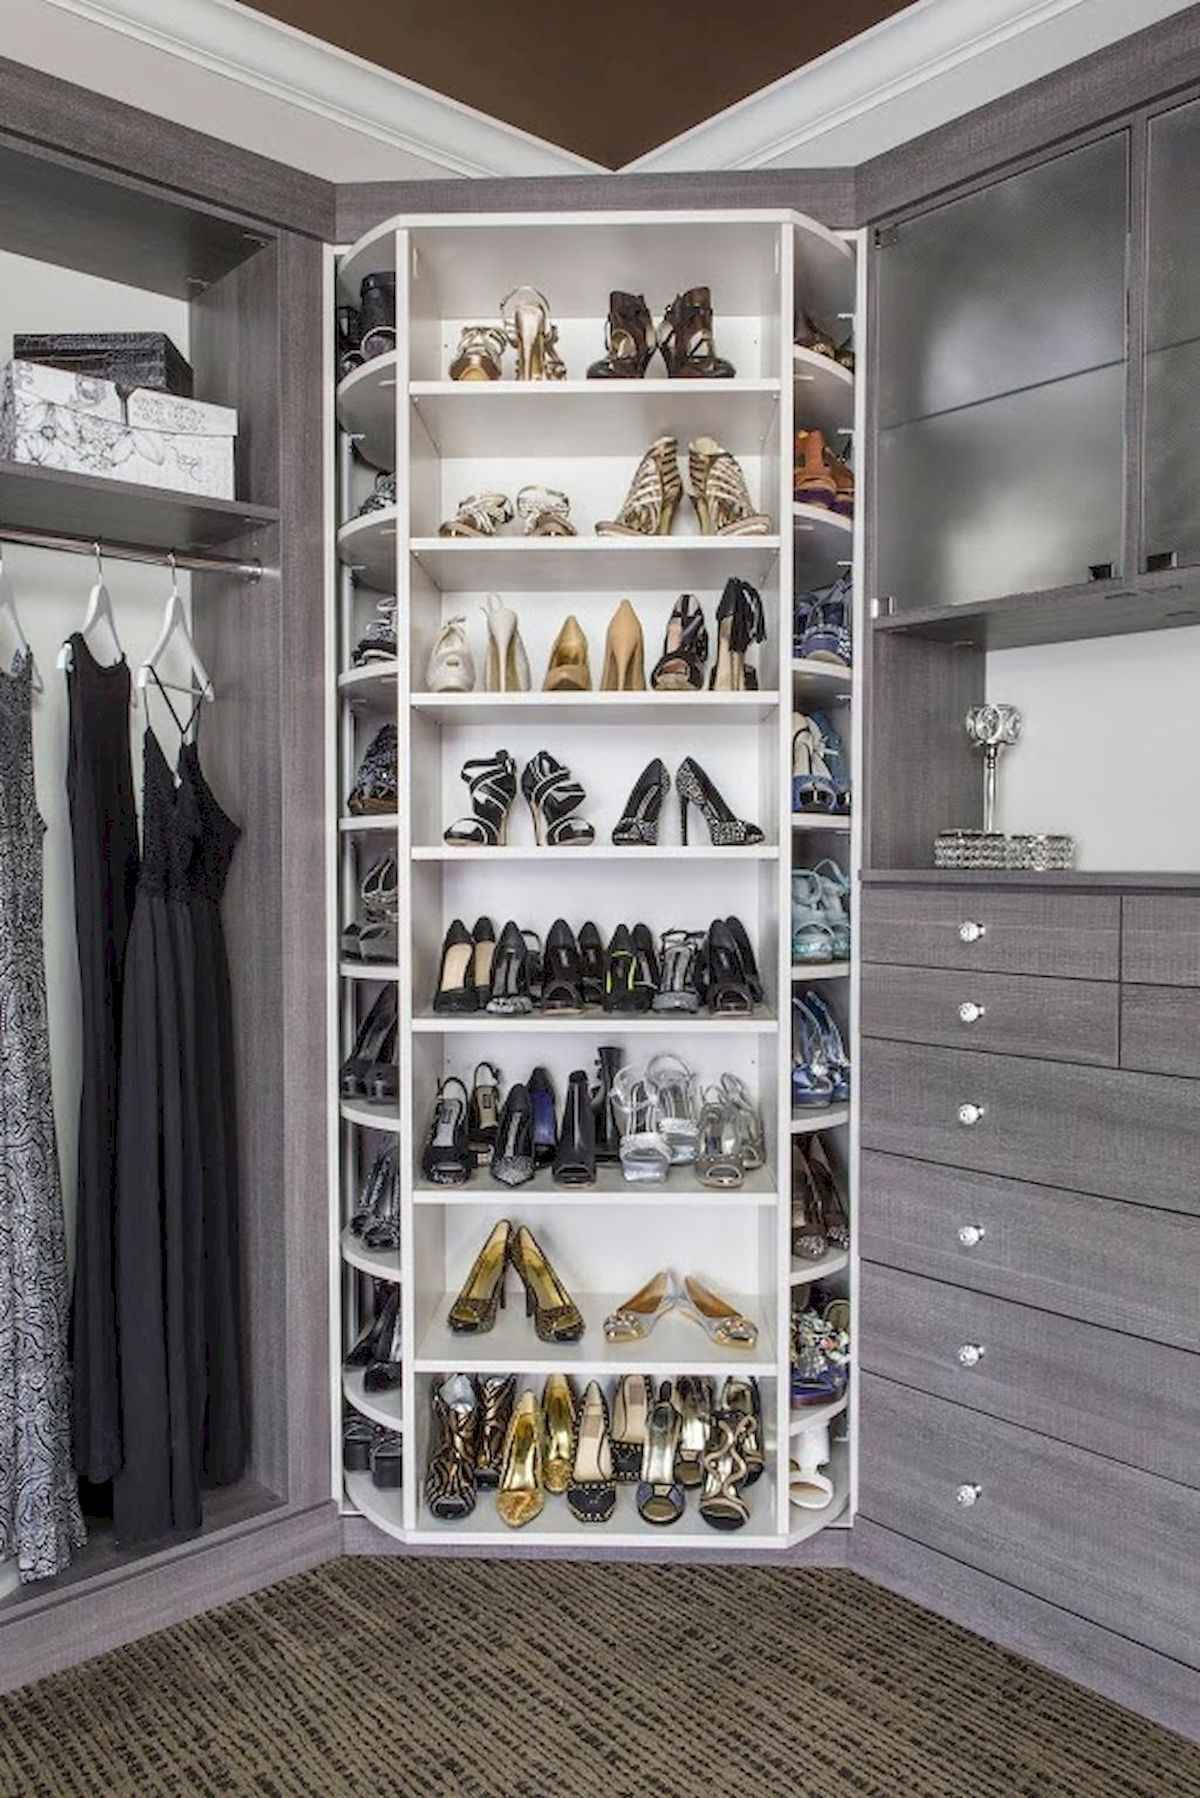 55 Genius Shoes Rack Design Ideas 4 Coachdecor Com Closet Remodel Closet Designs Closet Design